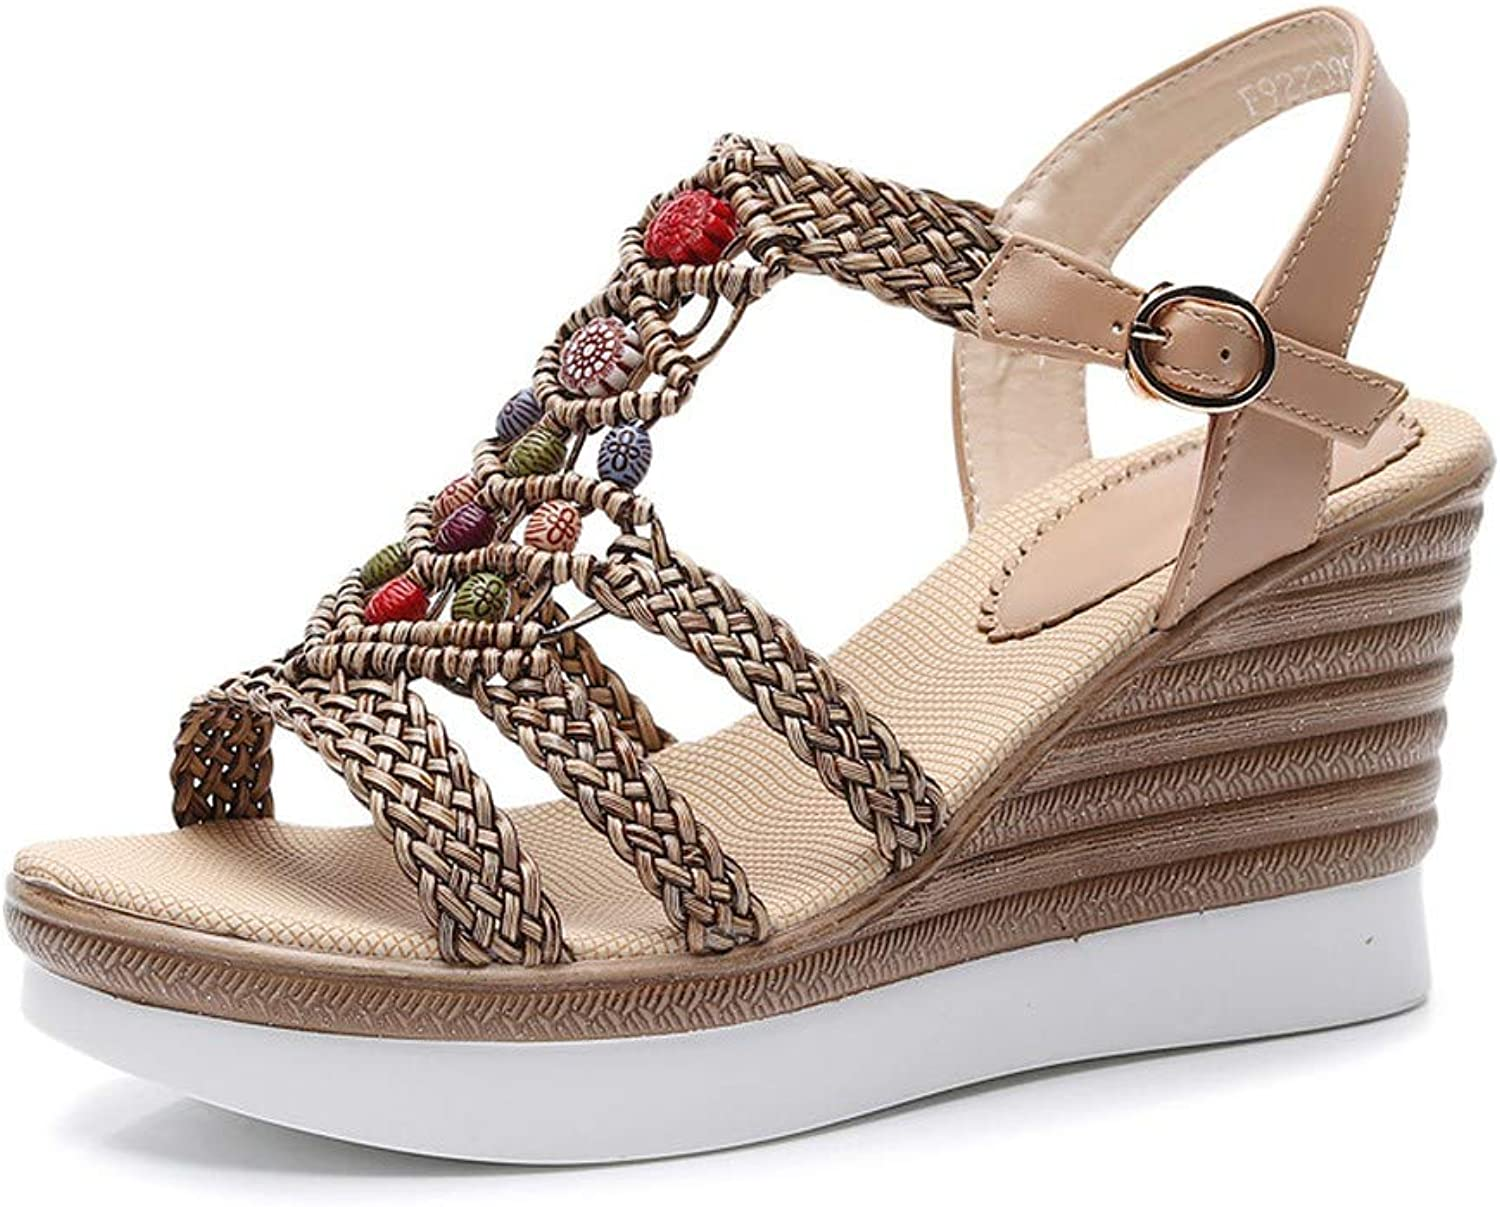 DBQWTY Ladies'Summer Slope-Heeled Flax Sandals Comfortable Walking Fashion Sandals